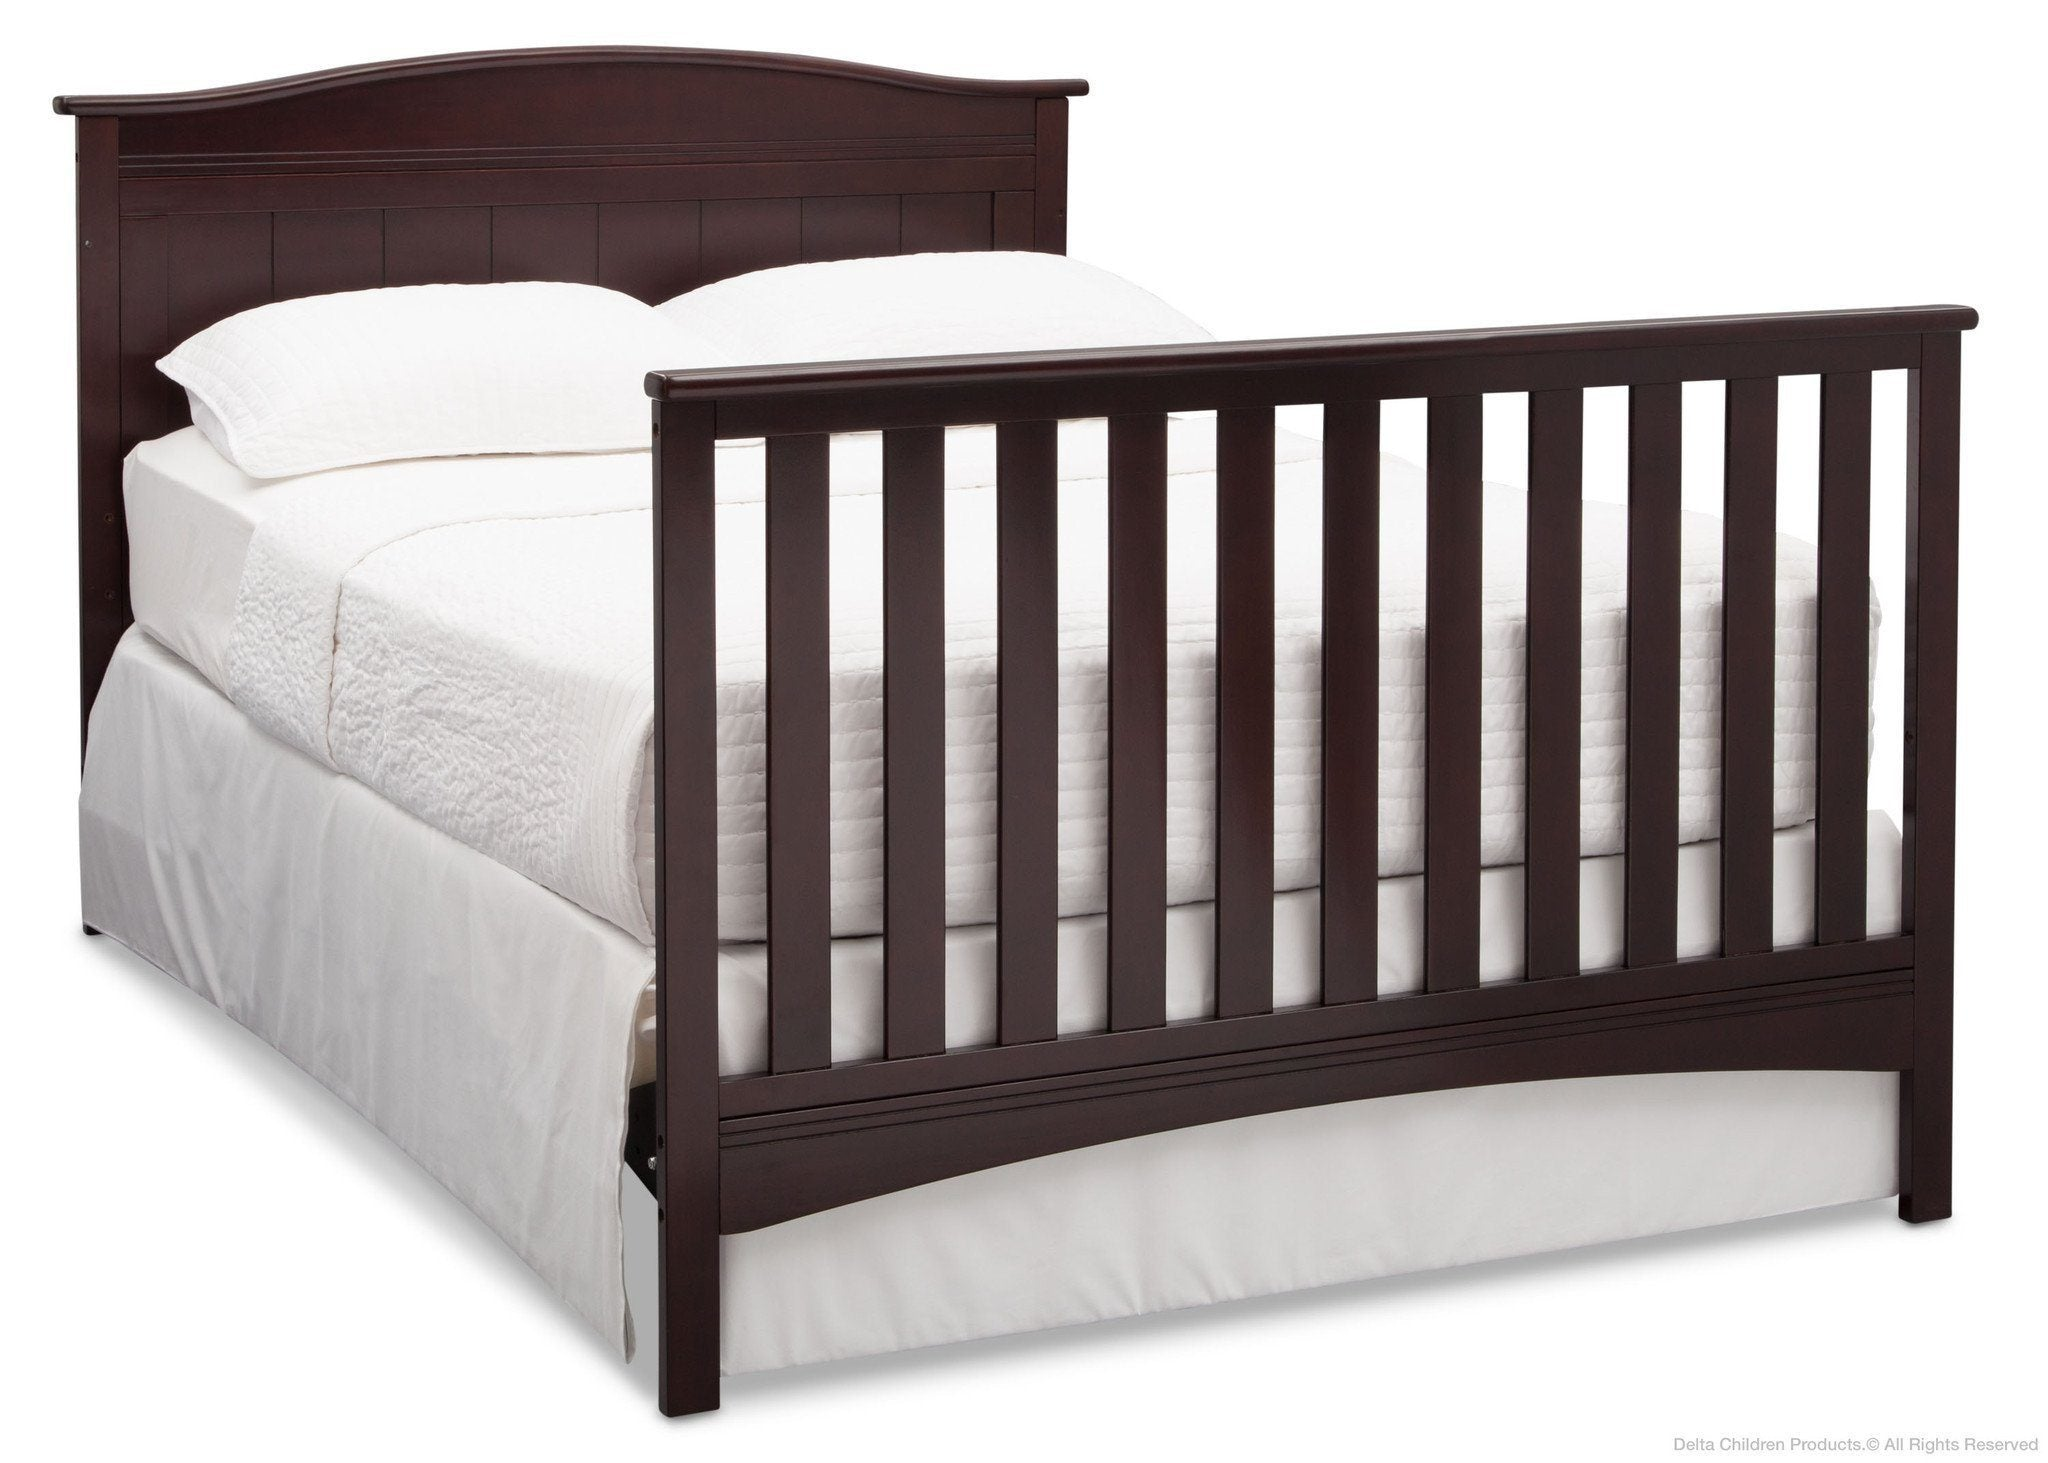 Delta Children Dark Chocolate (207) Bennett 4-in-1 Crib Full Bed Conversion c6c